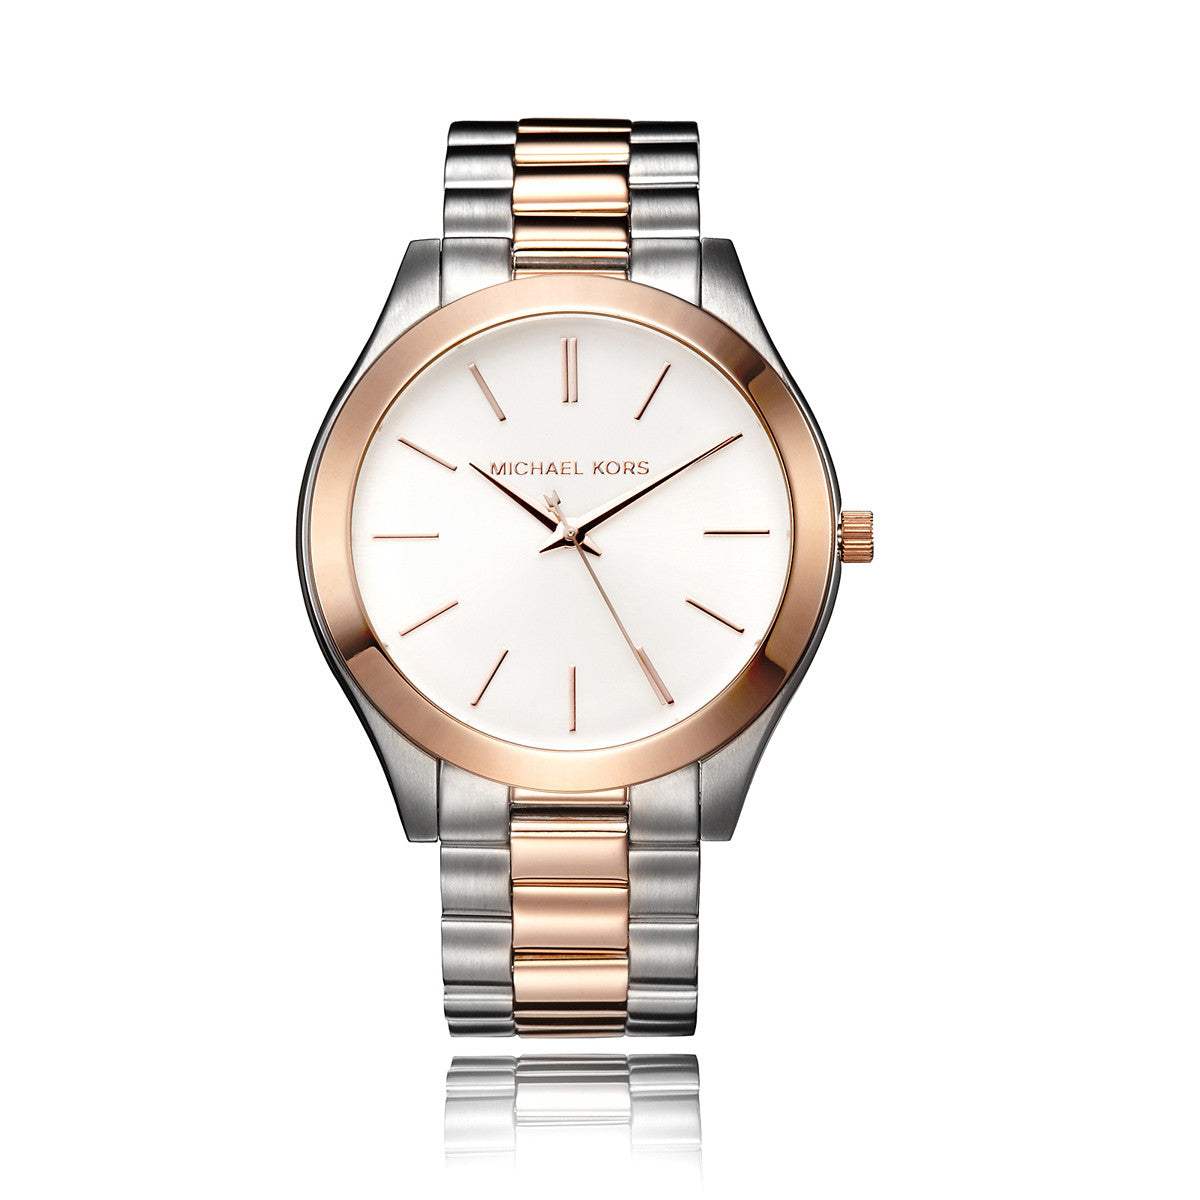 Michael Kors Watch MK3204